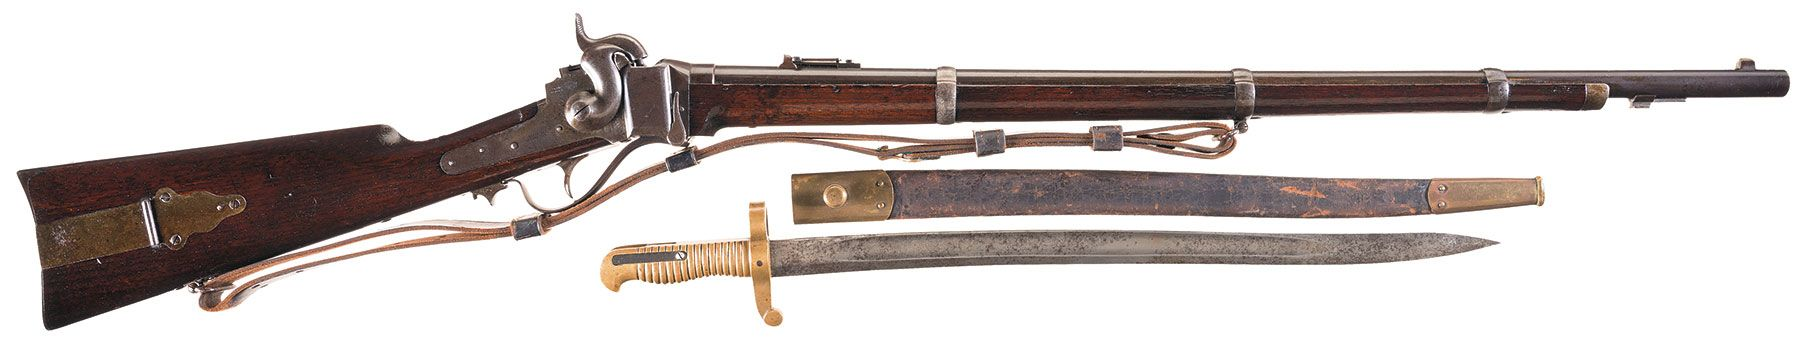 Sharps New Model 1859 Percussion Military Rifle with Bayonet